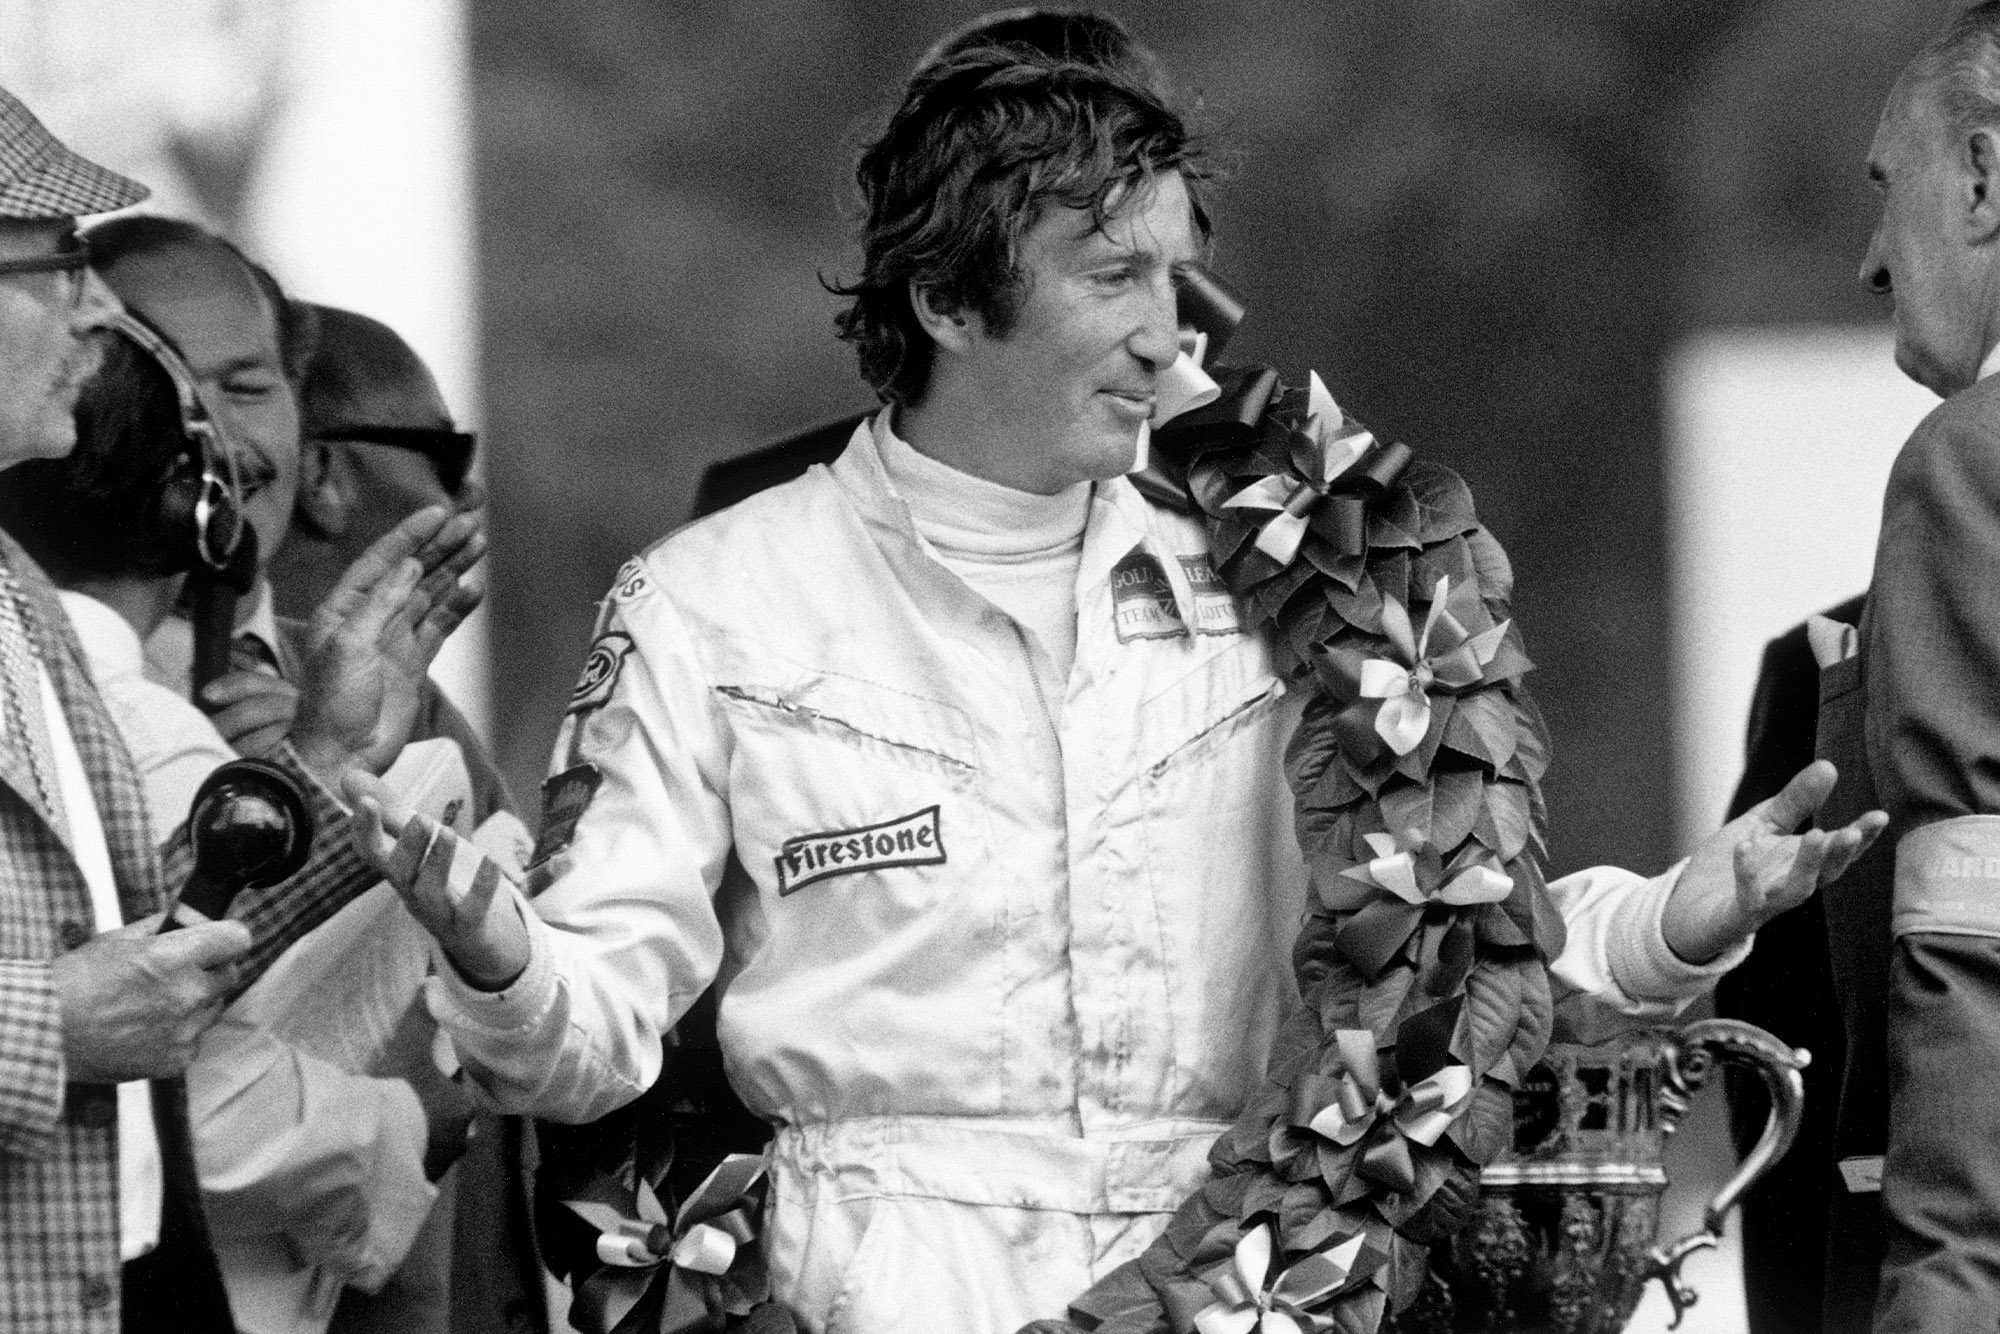 Jochen Rindt on the podium at the 1970 British Grand Prix